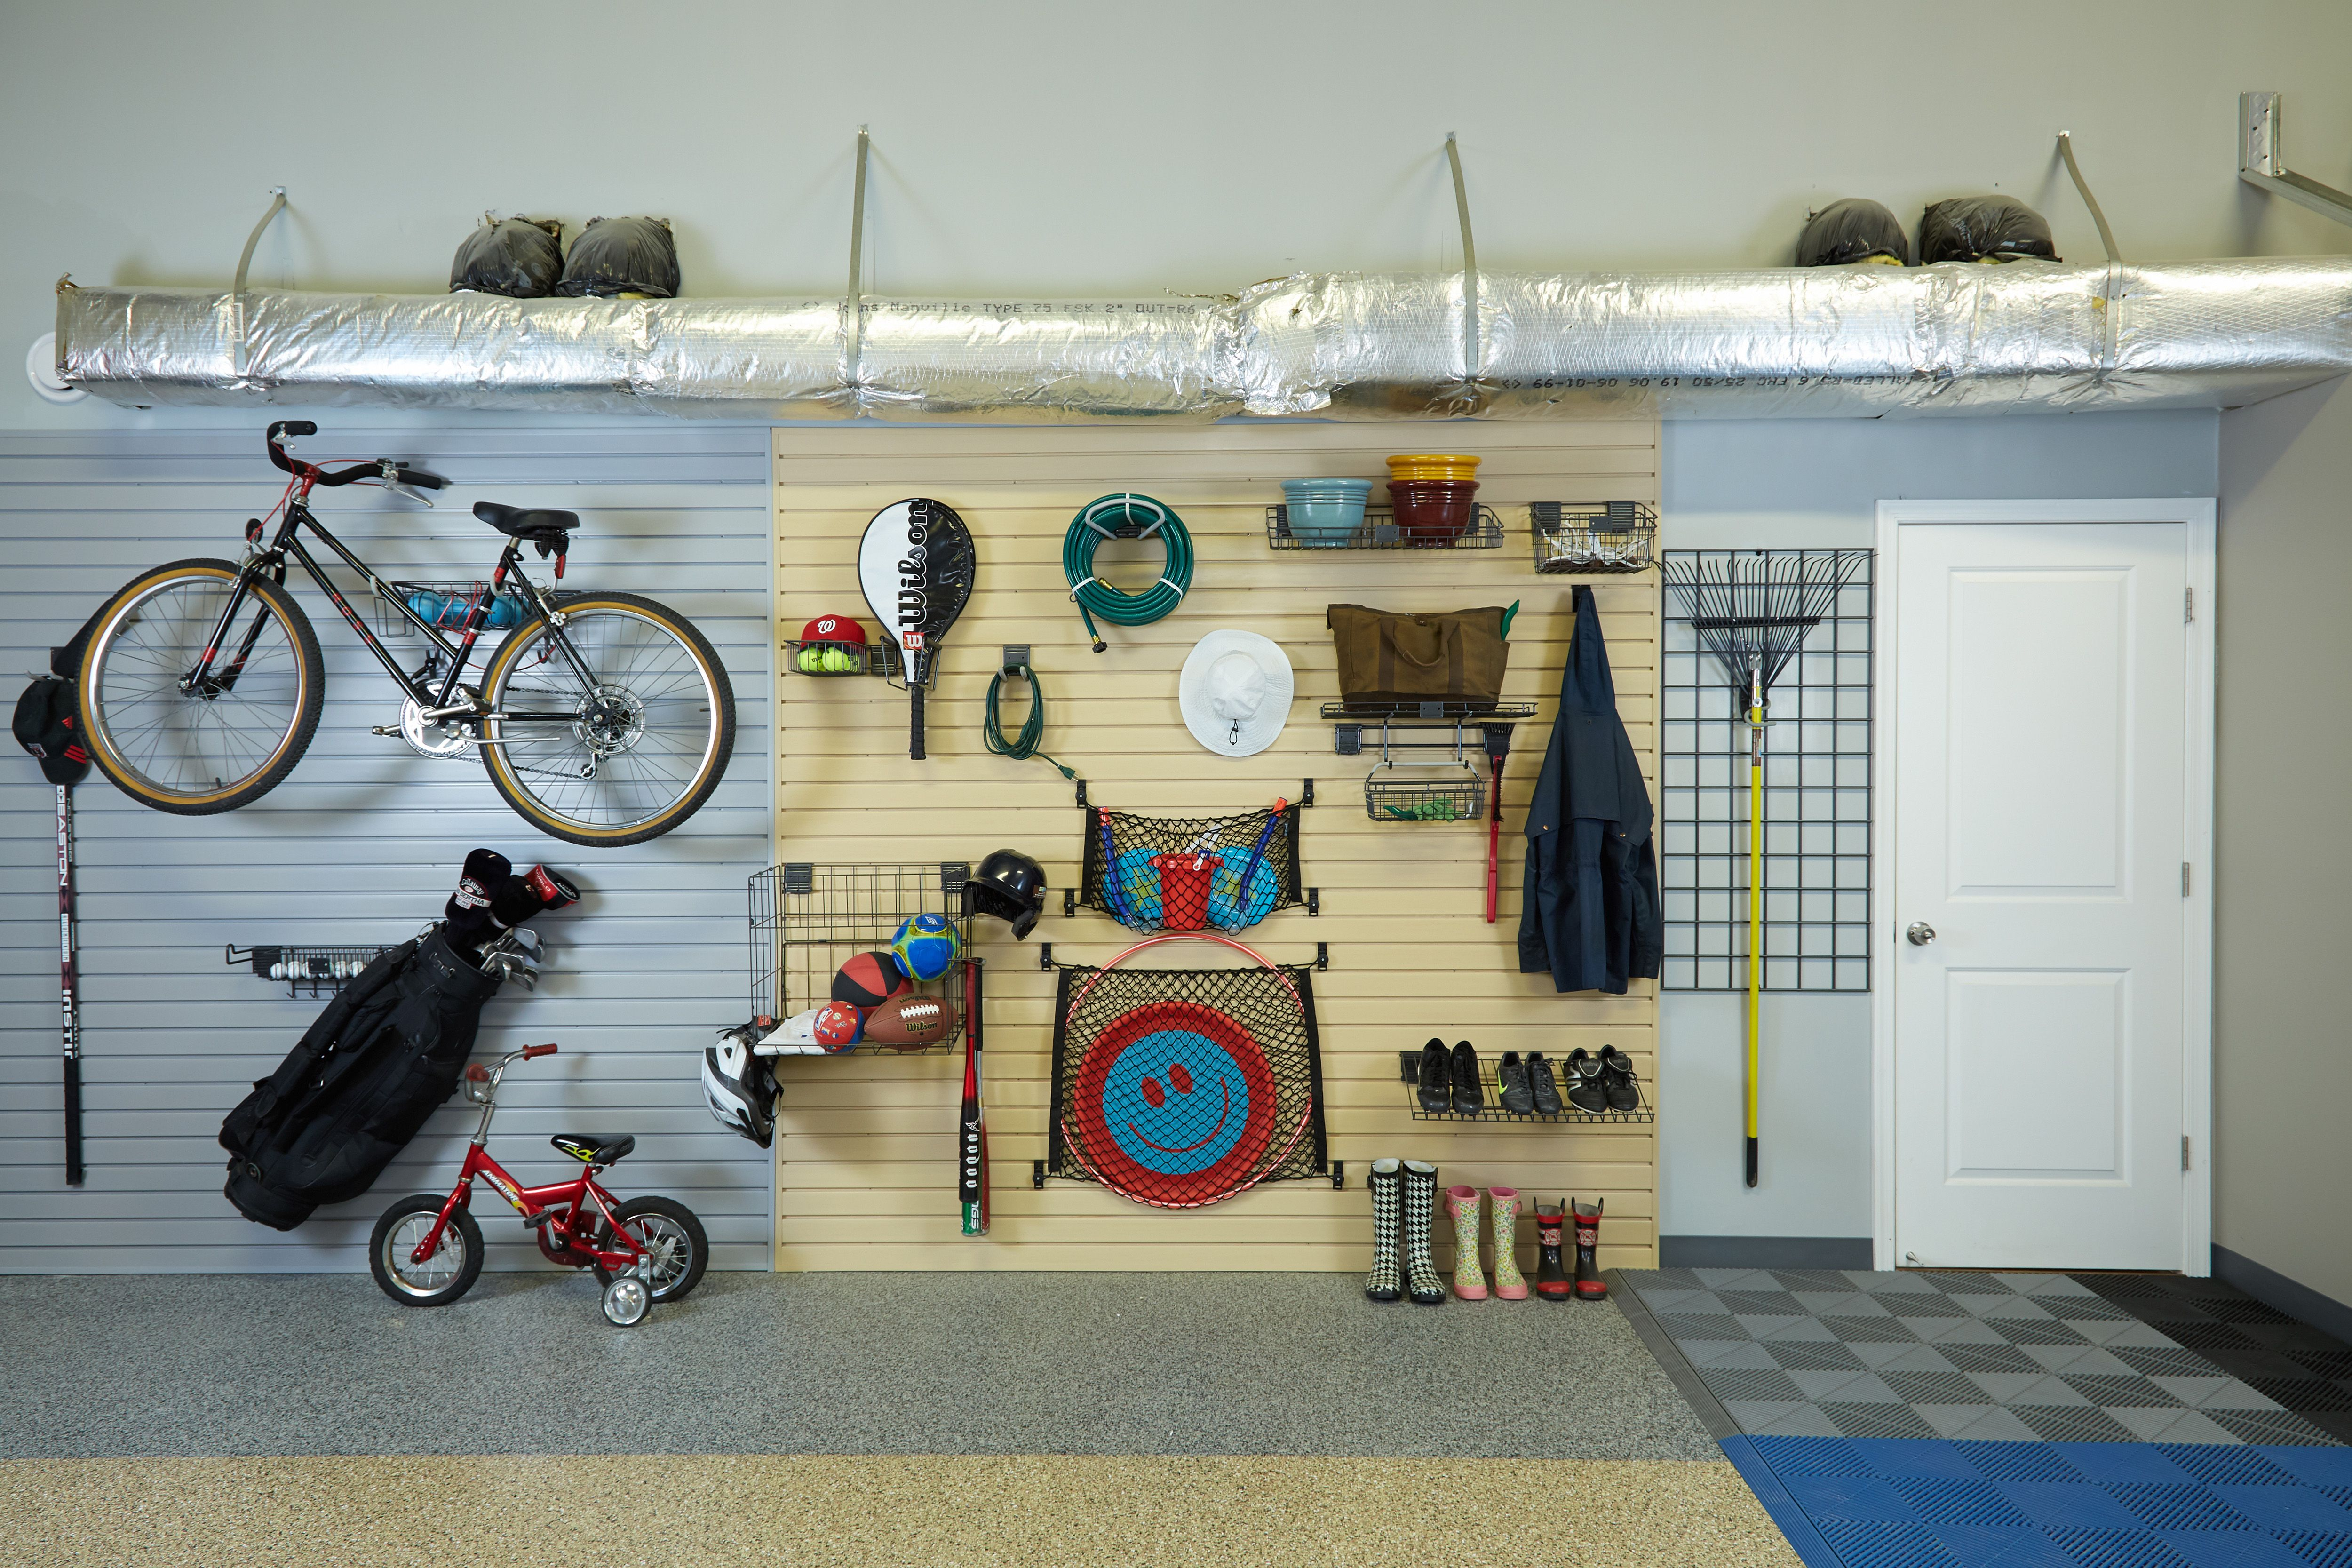 Garage Gadgets keep sporting goods grouped togetherutilizing bike hoists